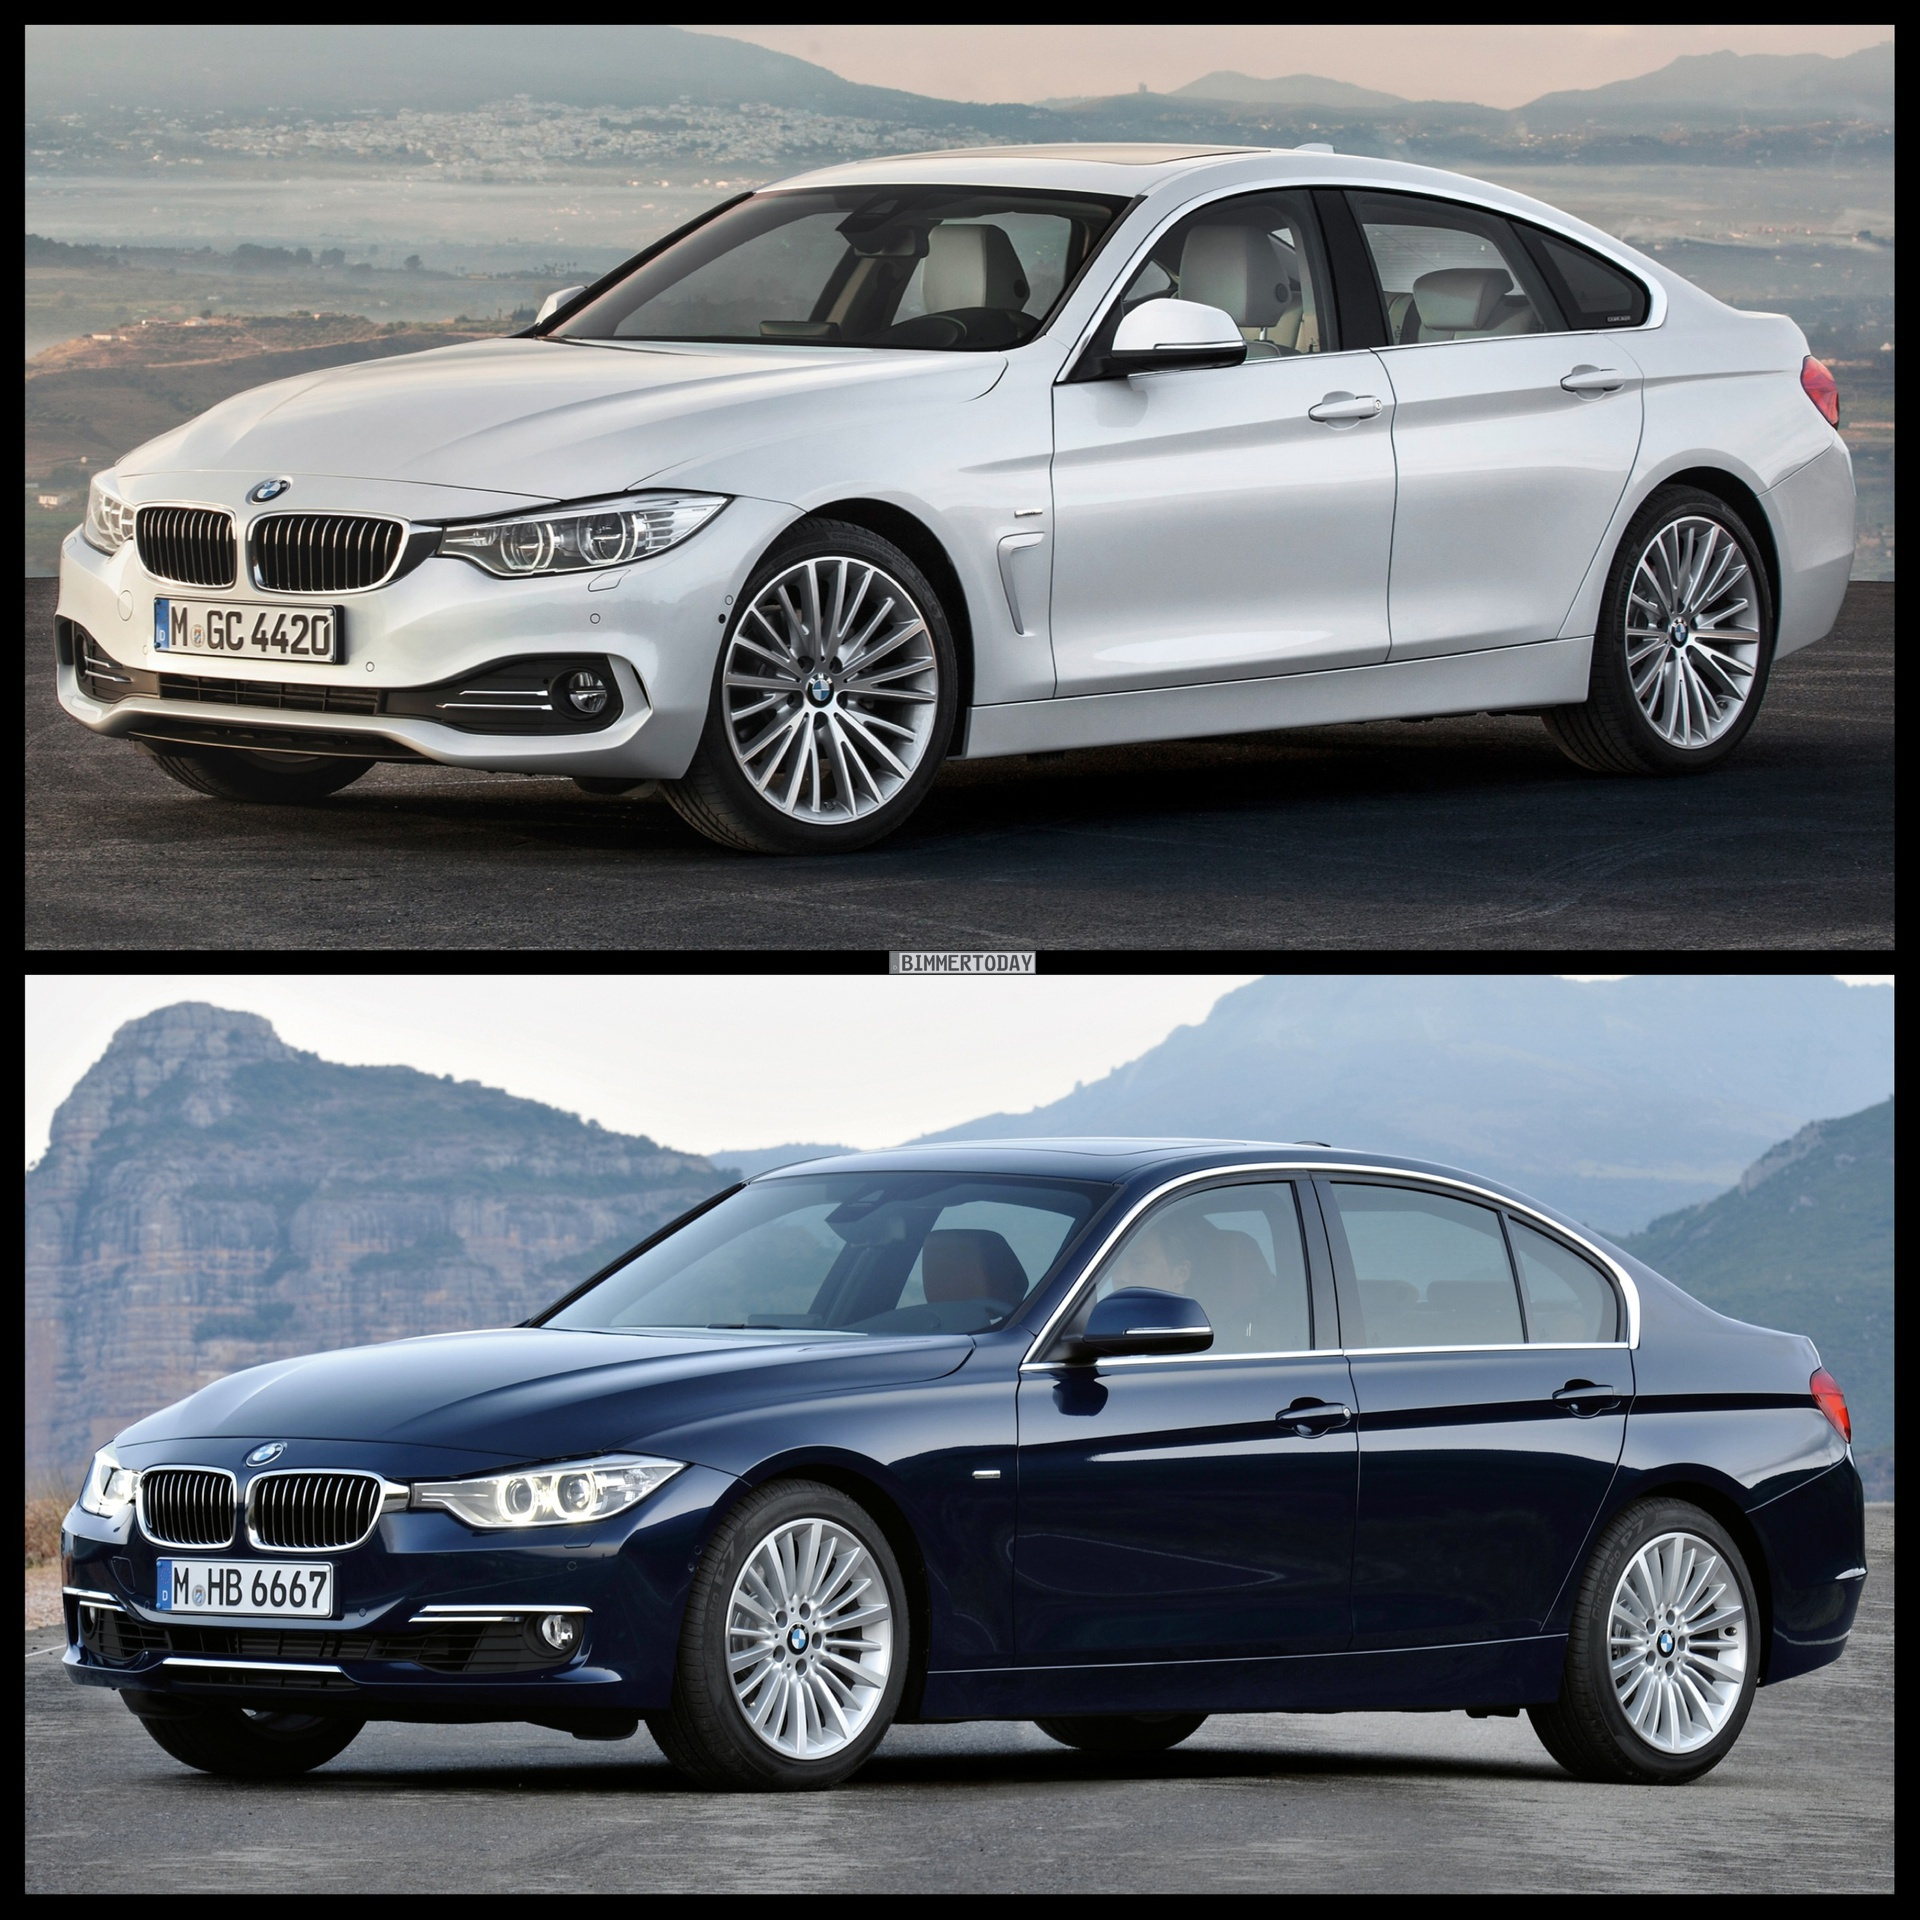 Photo comparison bmw 4 series gran coupe vs audi s5 sportback bild vergleich bmw 4er gran coupe gc f36 3er f30 limousine luxury line 01 750x750